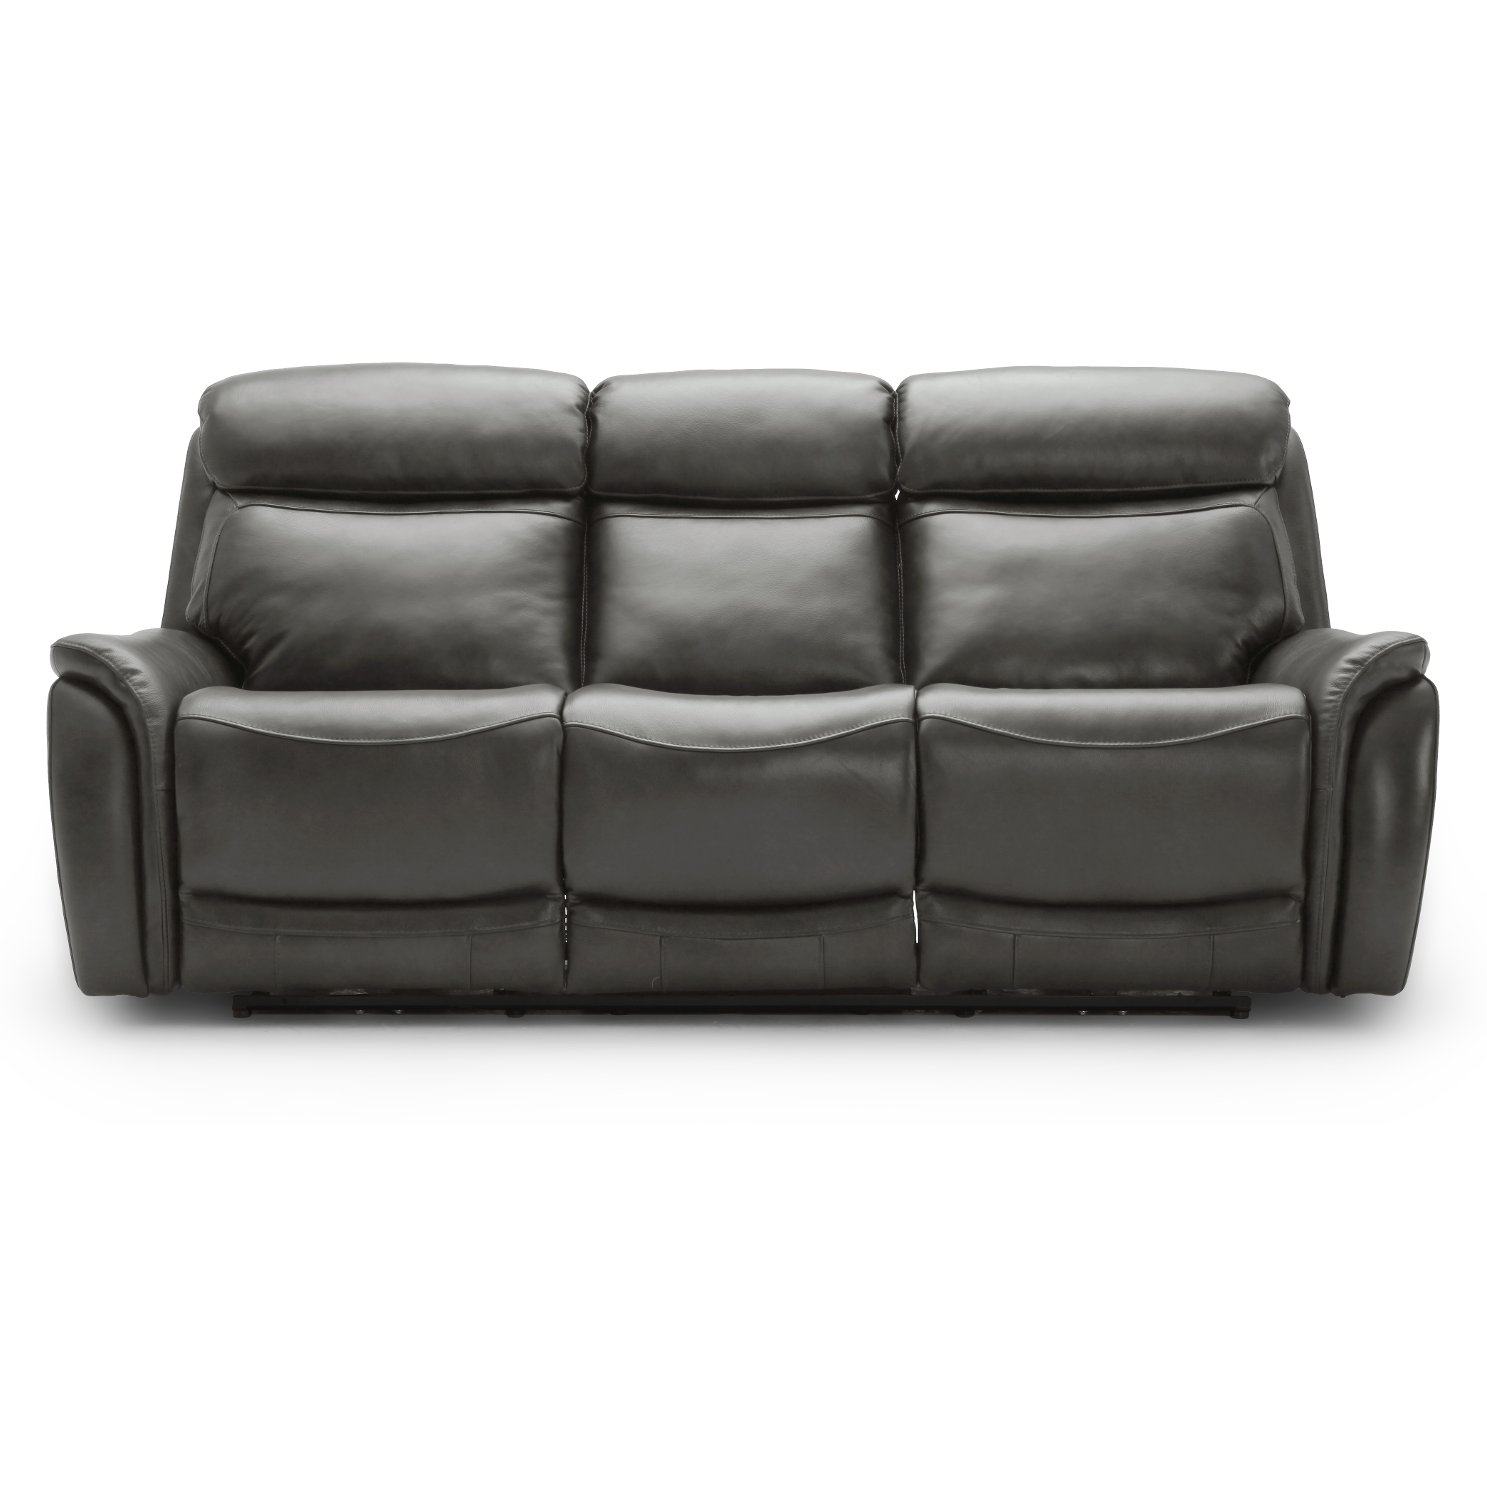 Gray Leather-Match Dual Power Reclining Sofa - Happy Happy